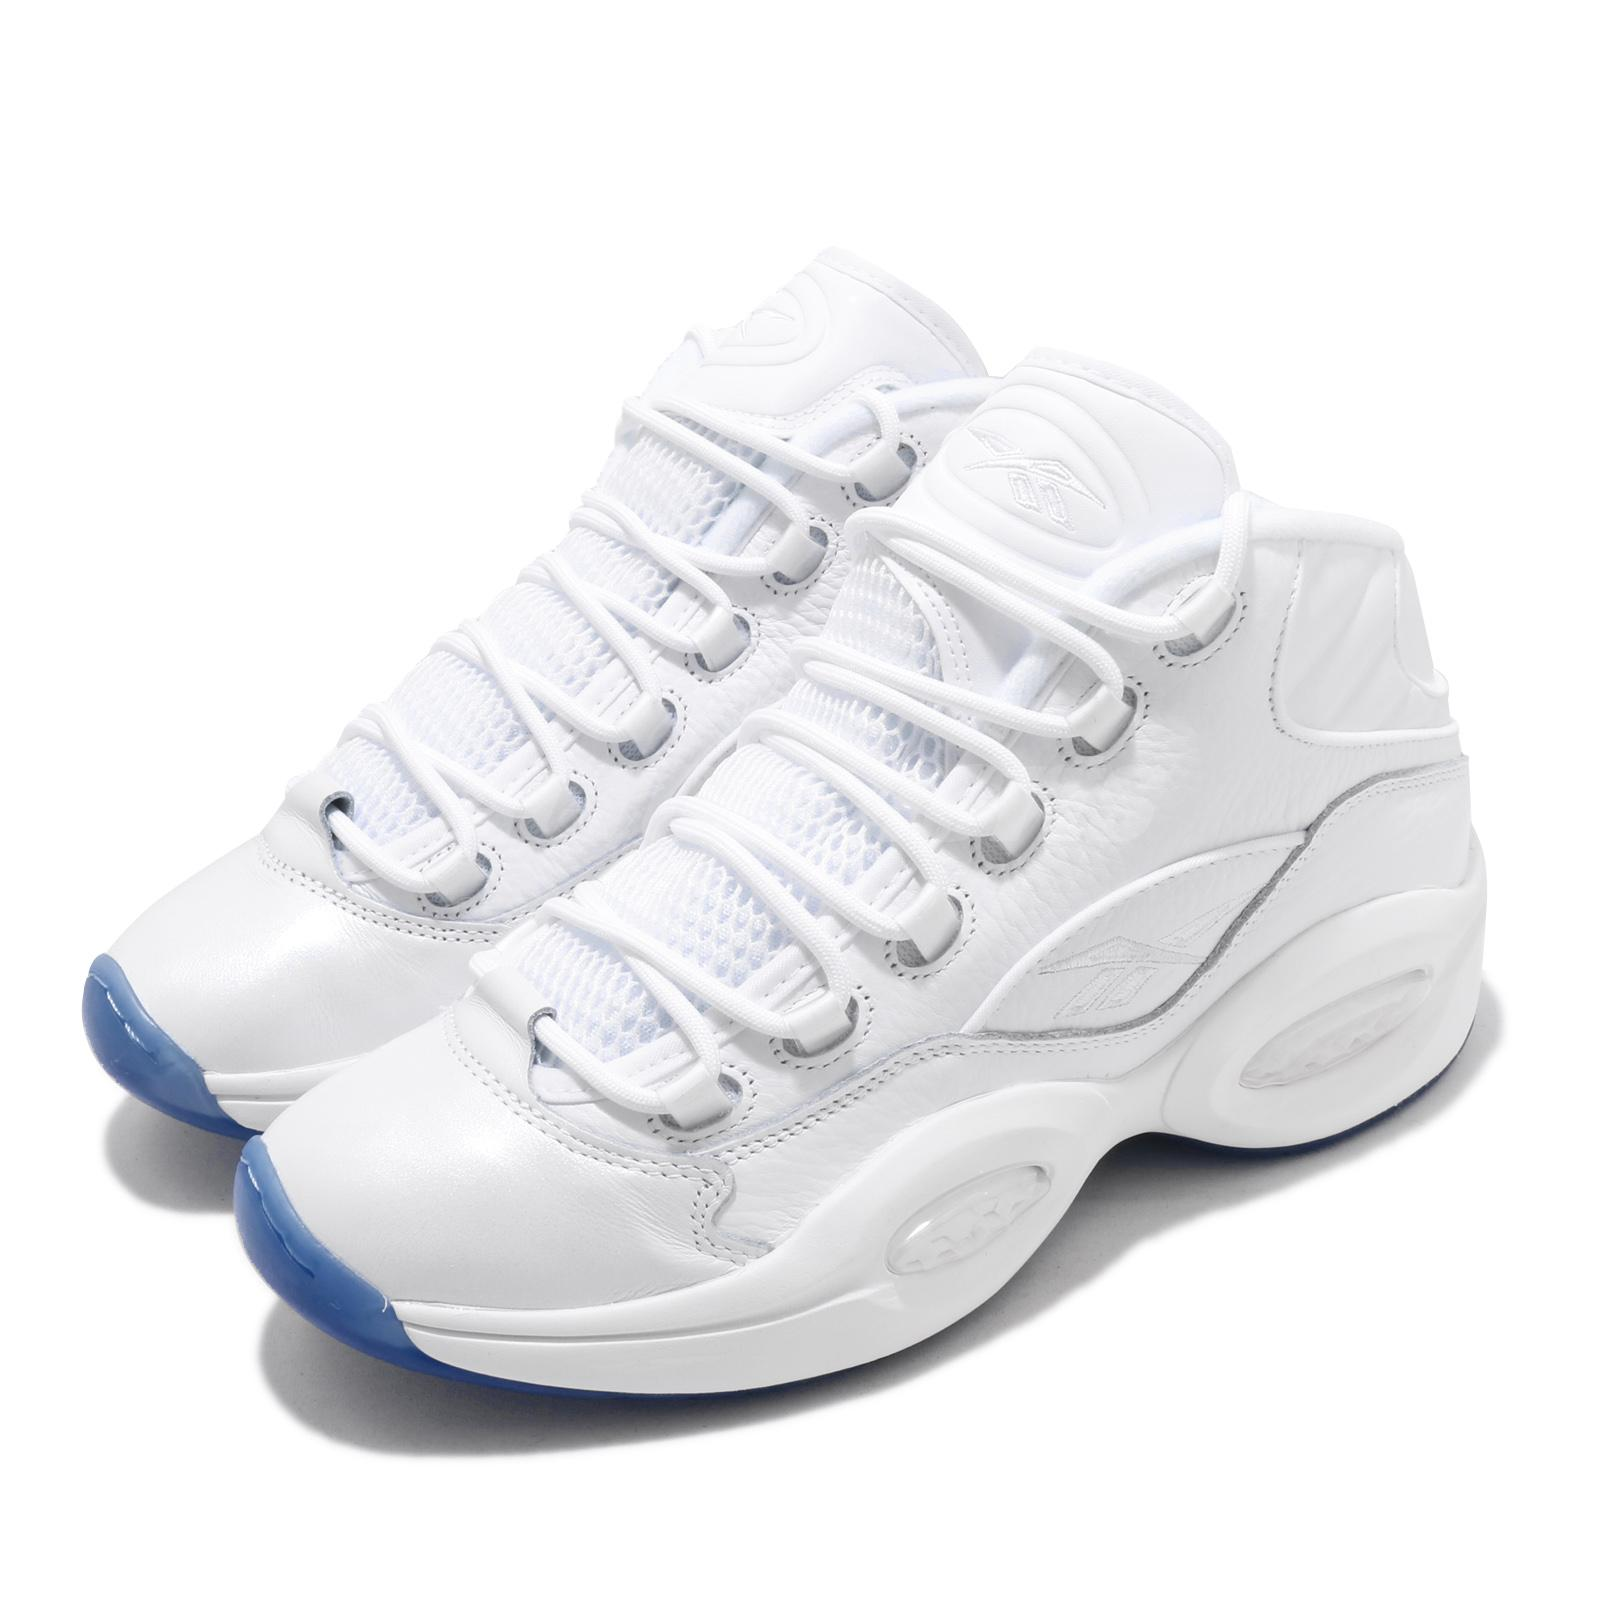 white iverson shoes Shop Clothing